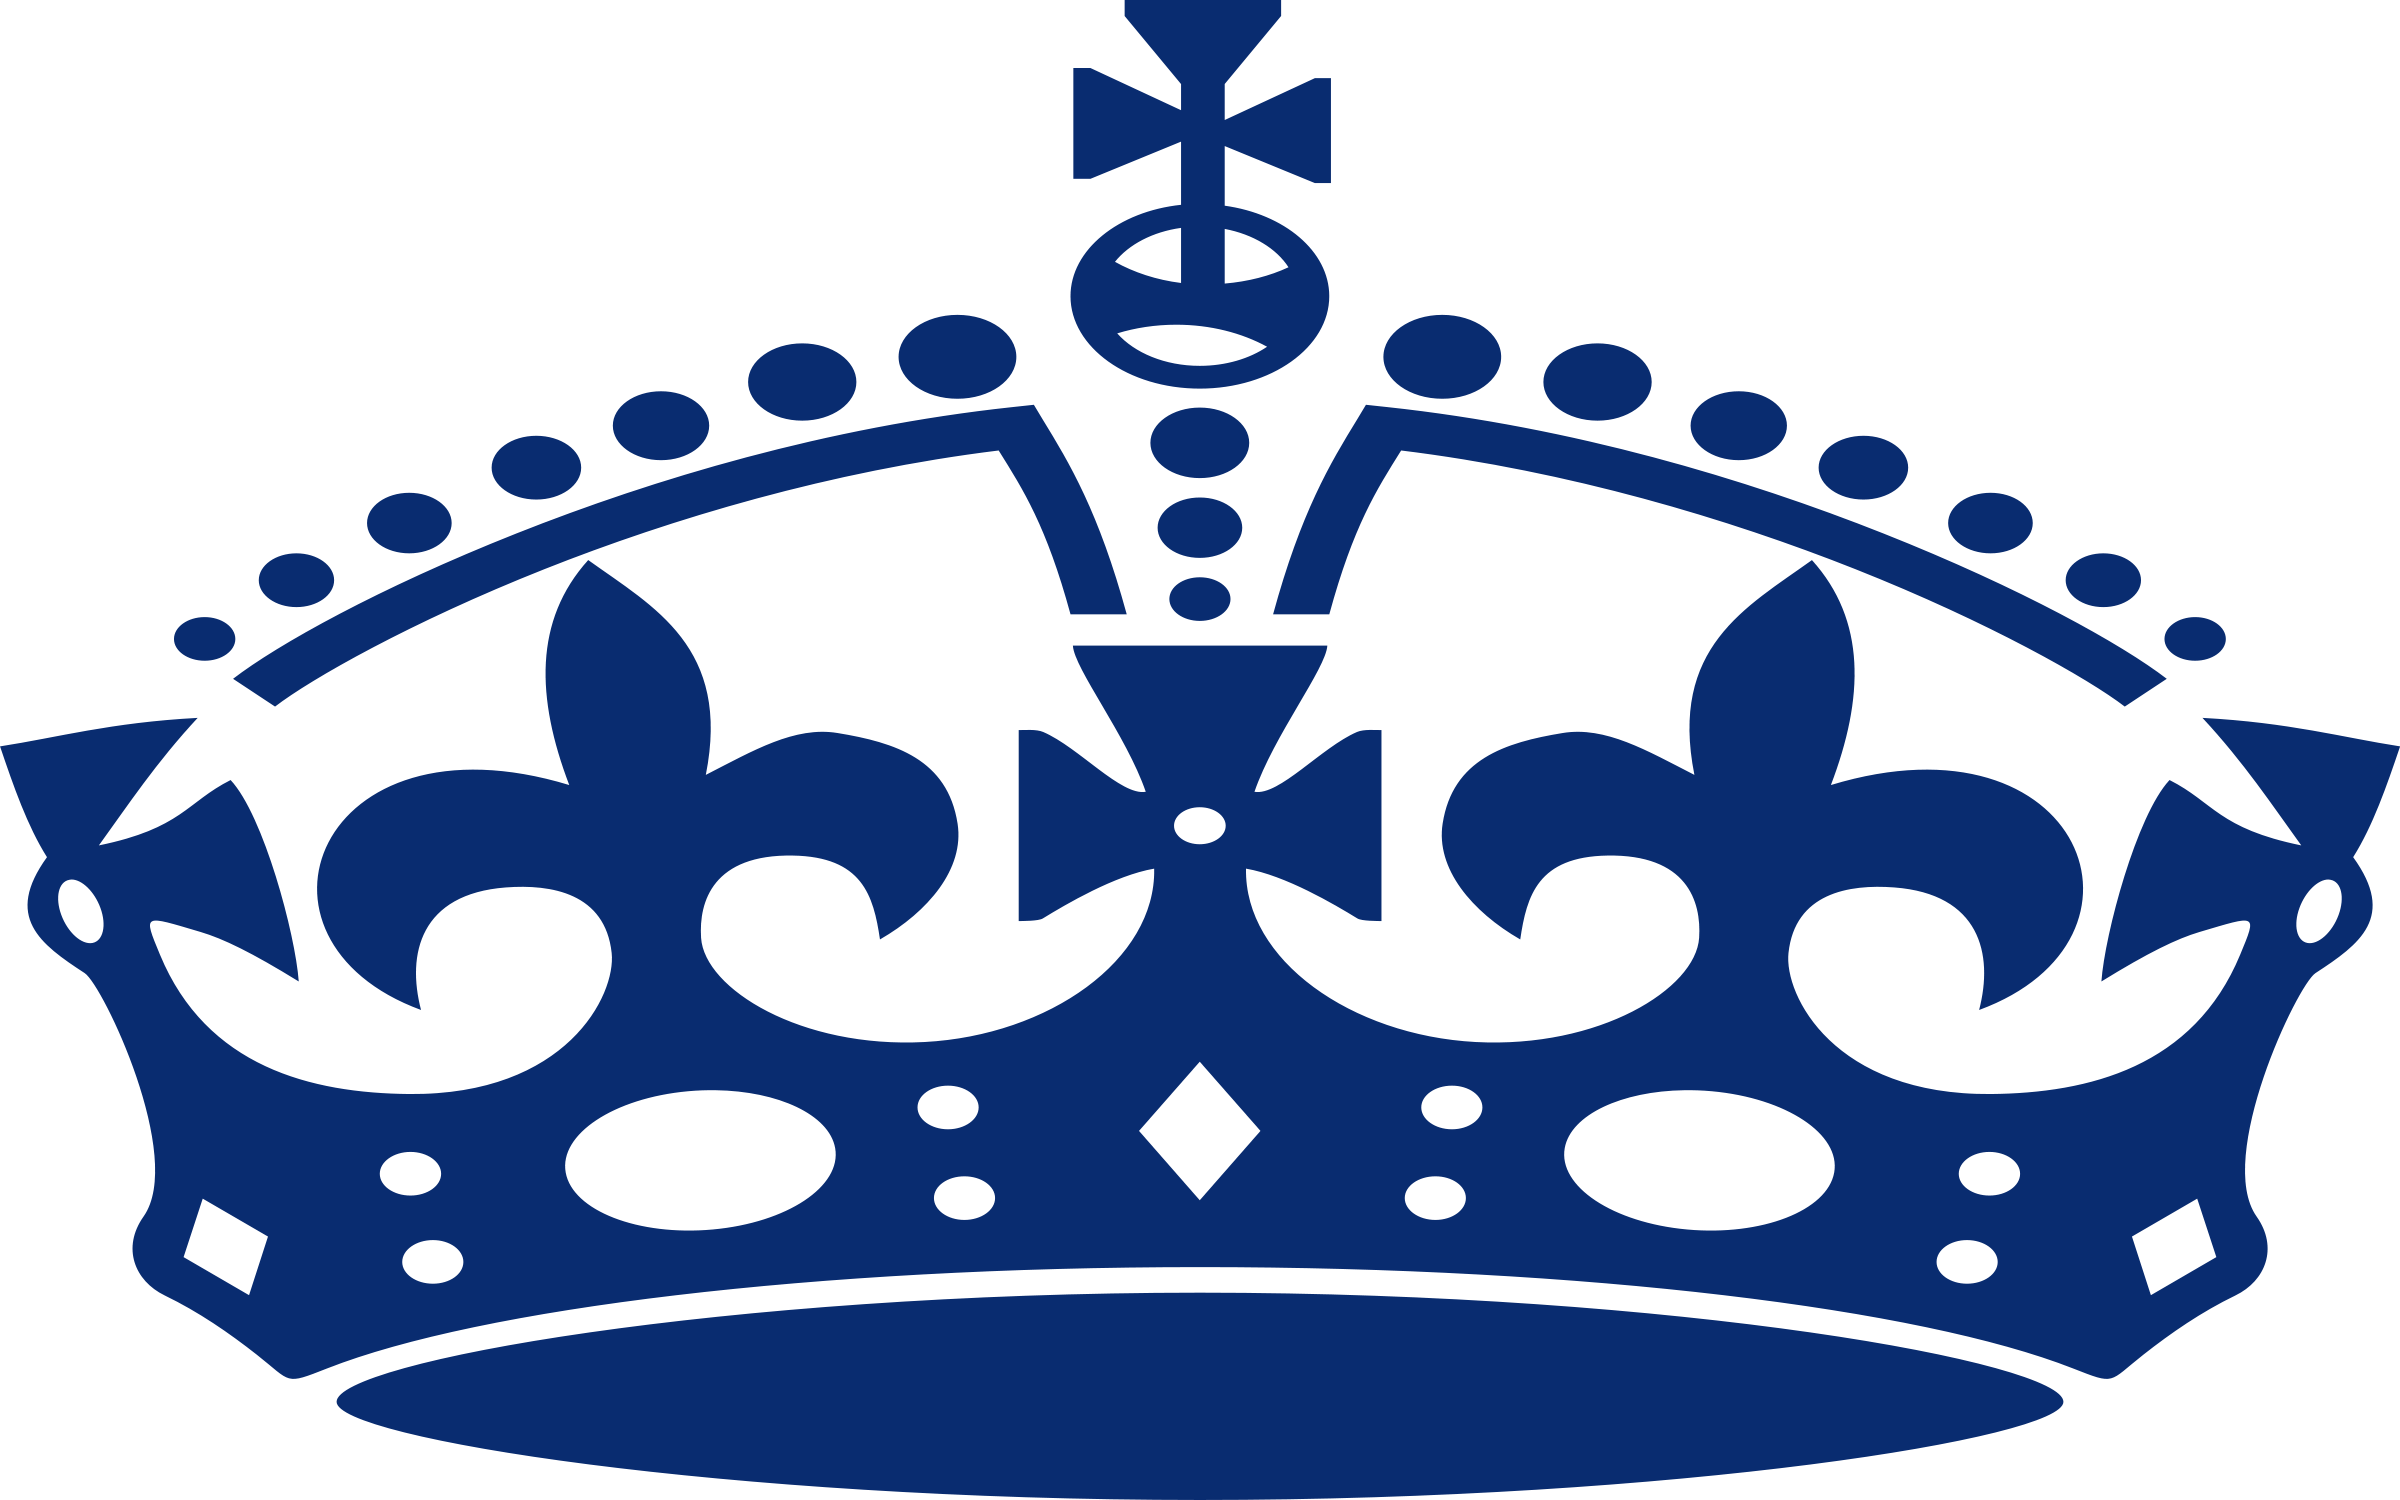 English crown clipart vector royalty free Blue Crown.png - ClipArt Best vector royalty free